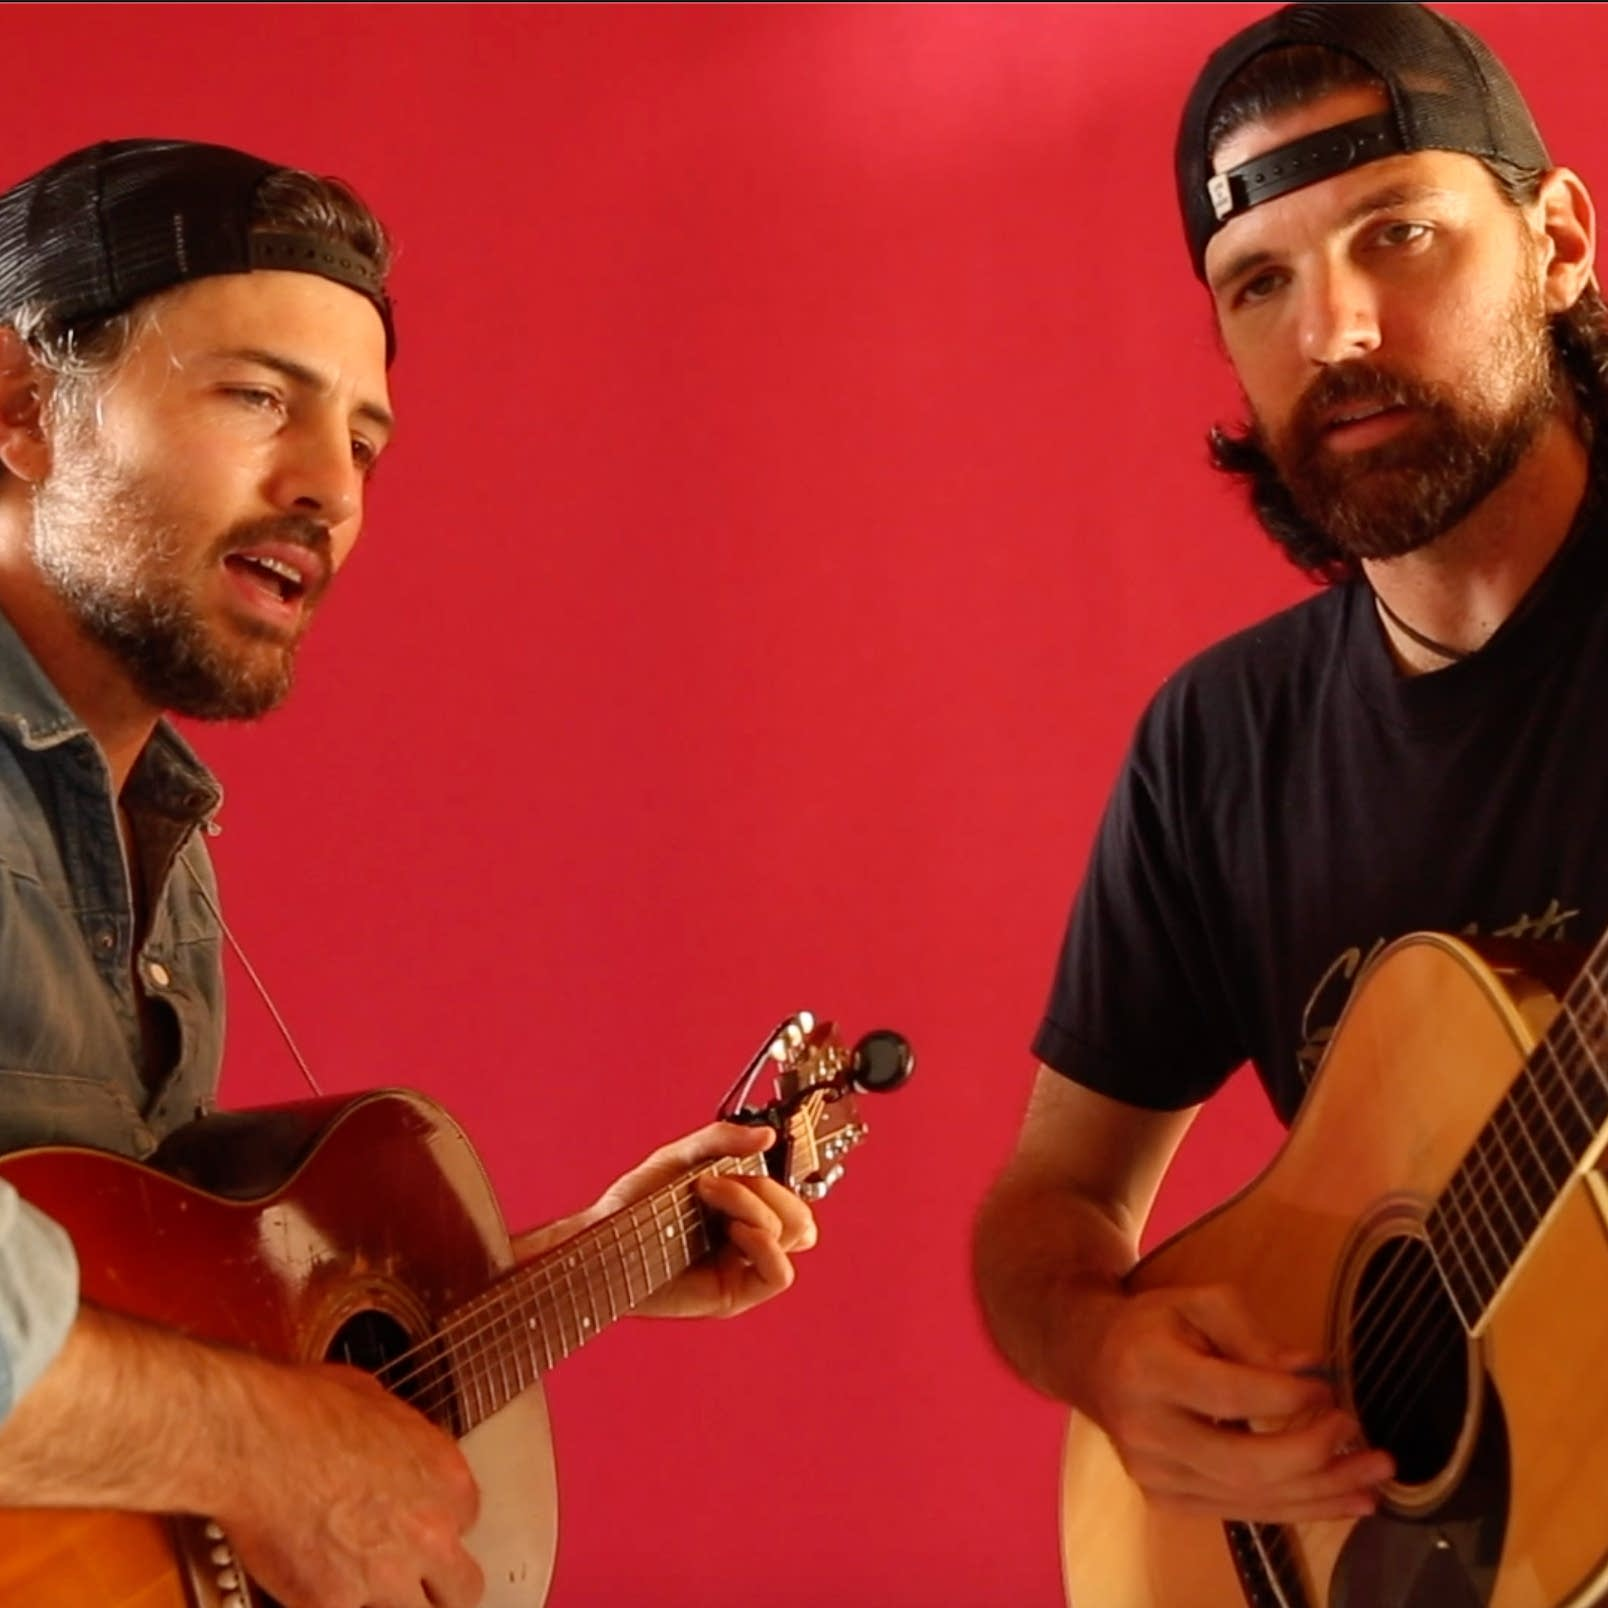 The Avett Brothers perform 'Back Into The Light'